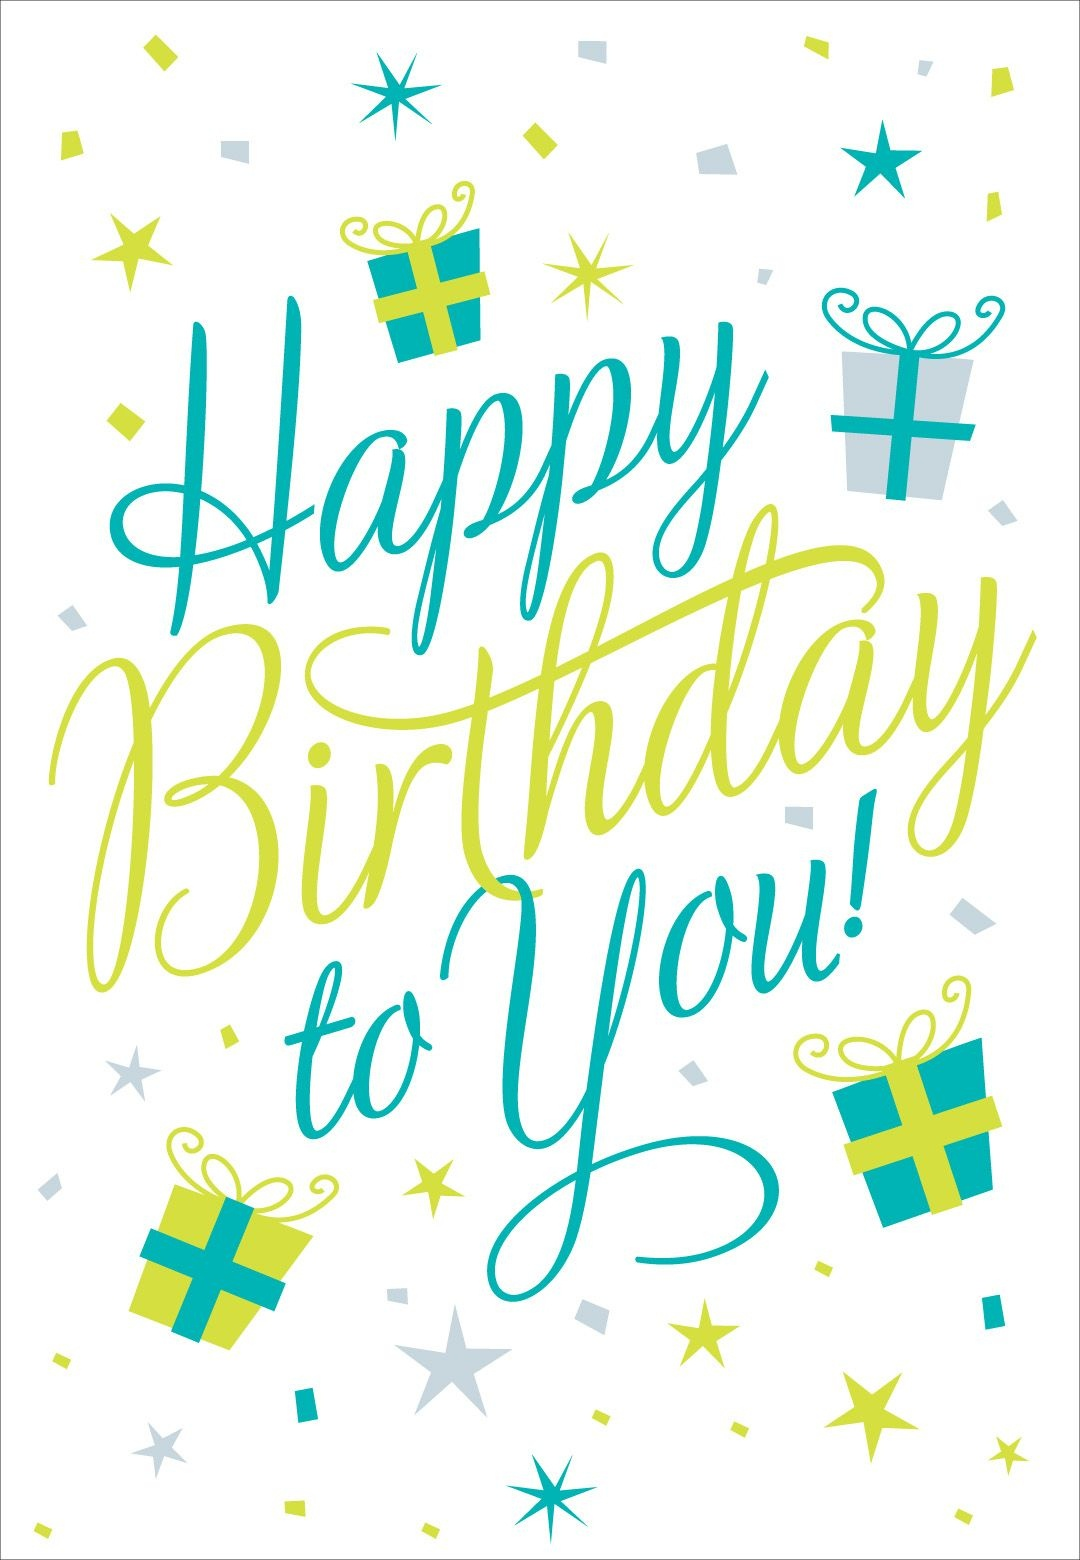 Free Printable Happy Birthday To You Greeting Card #birthday - Happy Birthday Free Cards Printable